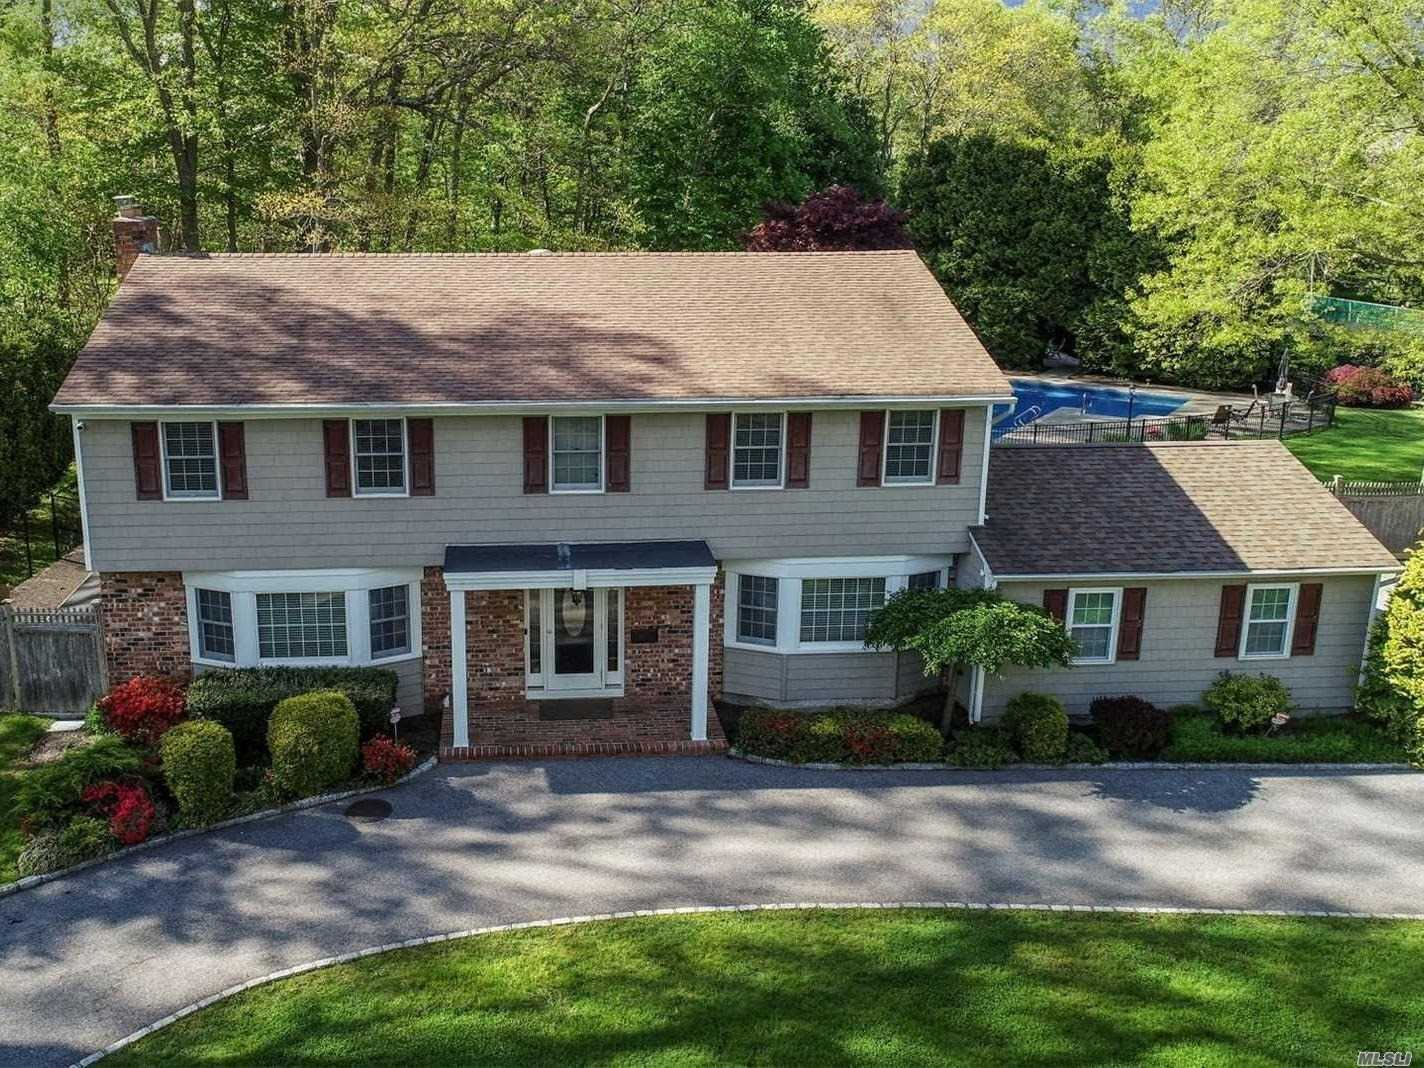 Resort Living at its finest!!! Enjoy Country Club living in your own fully fenced, 1+ acre grounds w/ Built in BBQ, Salt water pool w/ waterfall, Cabana house, Brick patios, dog run, surround sound, lush lawns &specimen plantings. This Spacious, 4 Bedroom, 2.5 bath home has been totally designer renovated. Enjoy radiant heated floors, Chef's kitchen w/ Plato Cabinetry, Custom built ins, Gas heat and Fireplace, 2019 CAC, New baths, Anderson windows, Tons of storage, Custom Garage, Cul-de-Sac, Low Taxes!